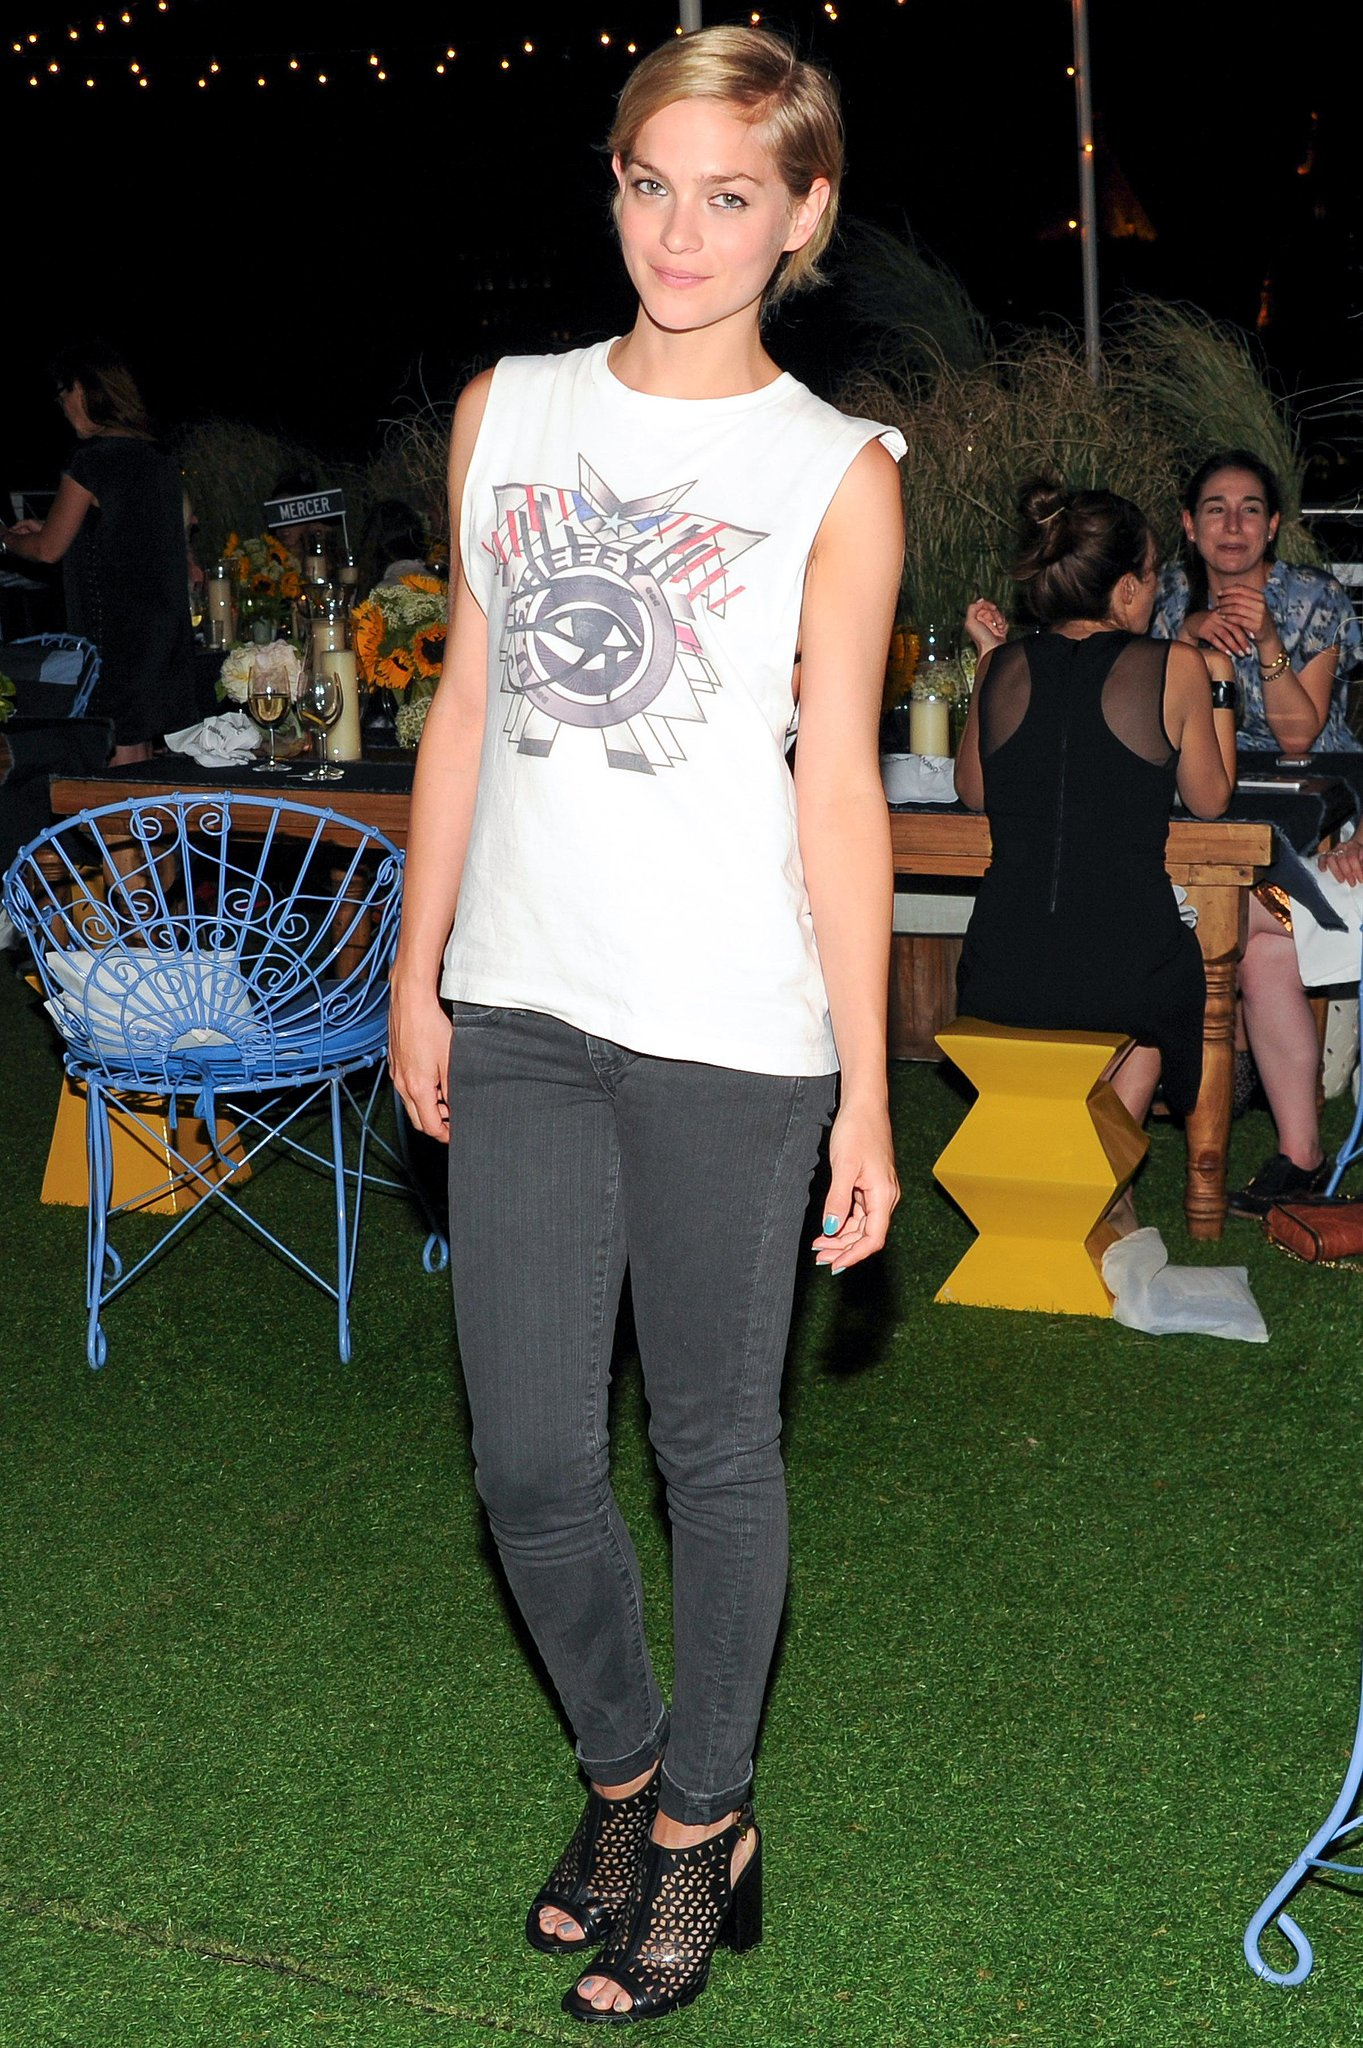 Leigh Lezark at the Rebecca Minkoff dinner for the label's collection in New York. Source: Billy Farrell/BFAnyc.com